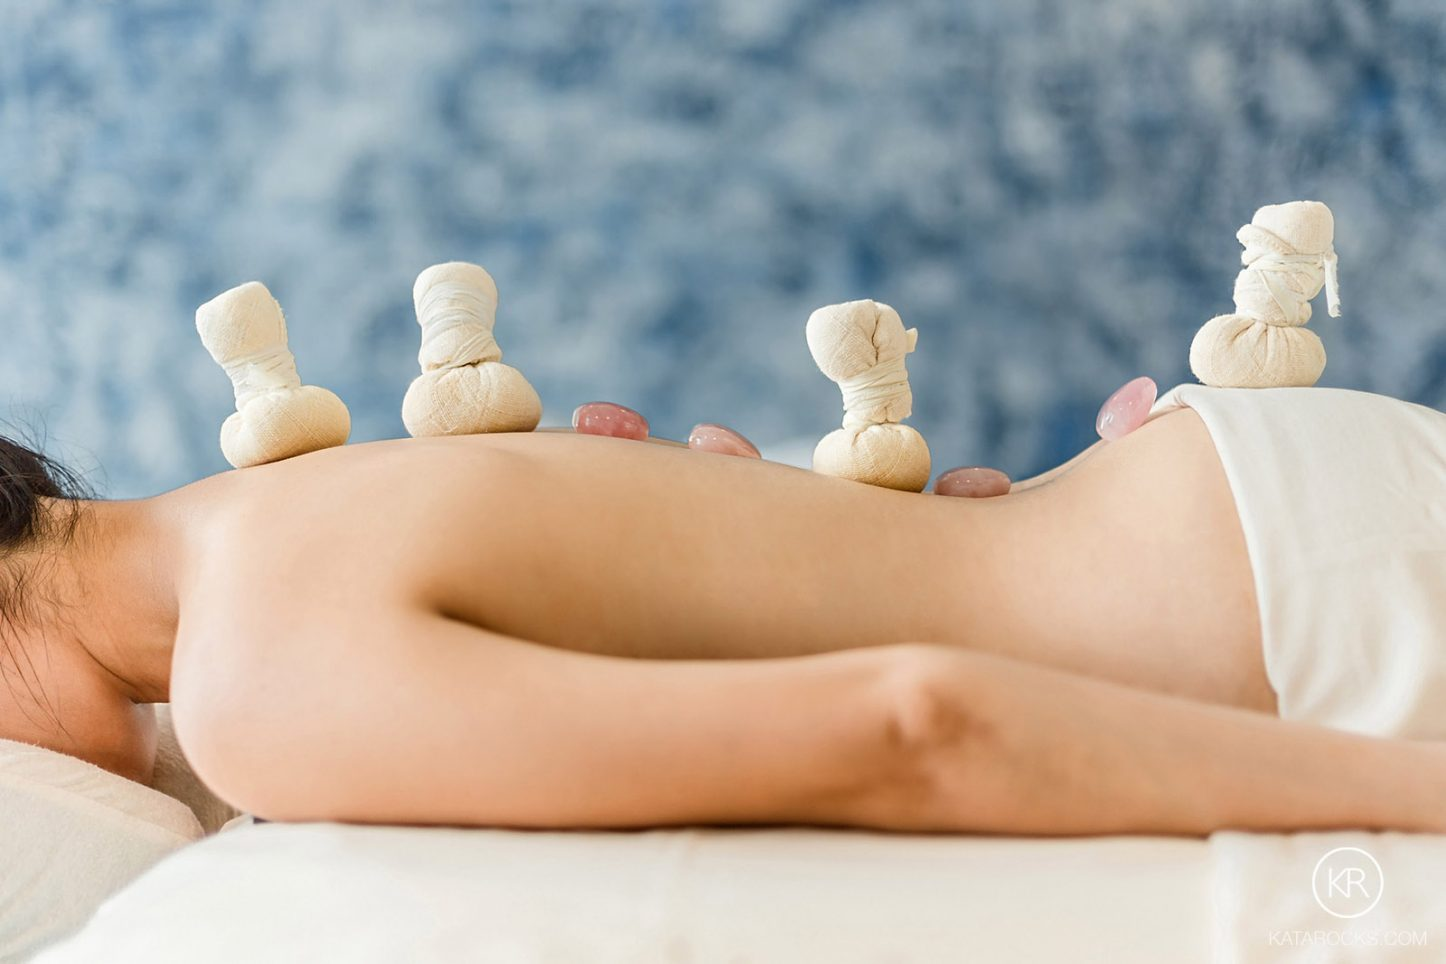 phuket's leading cutting edge health and beauty centre